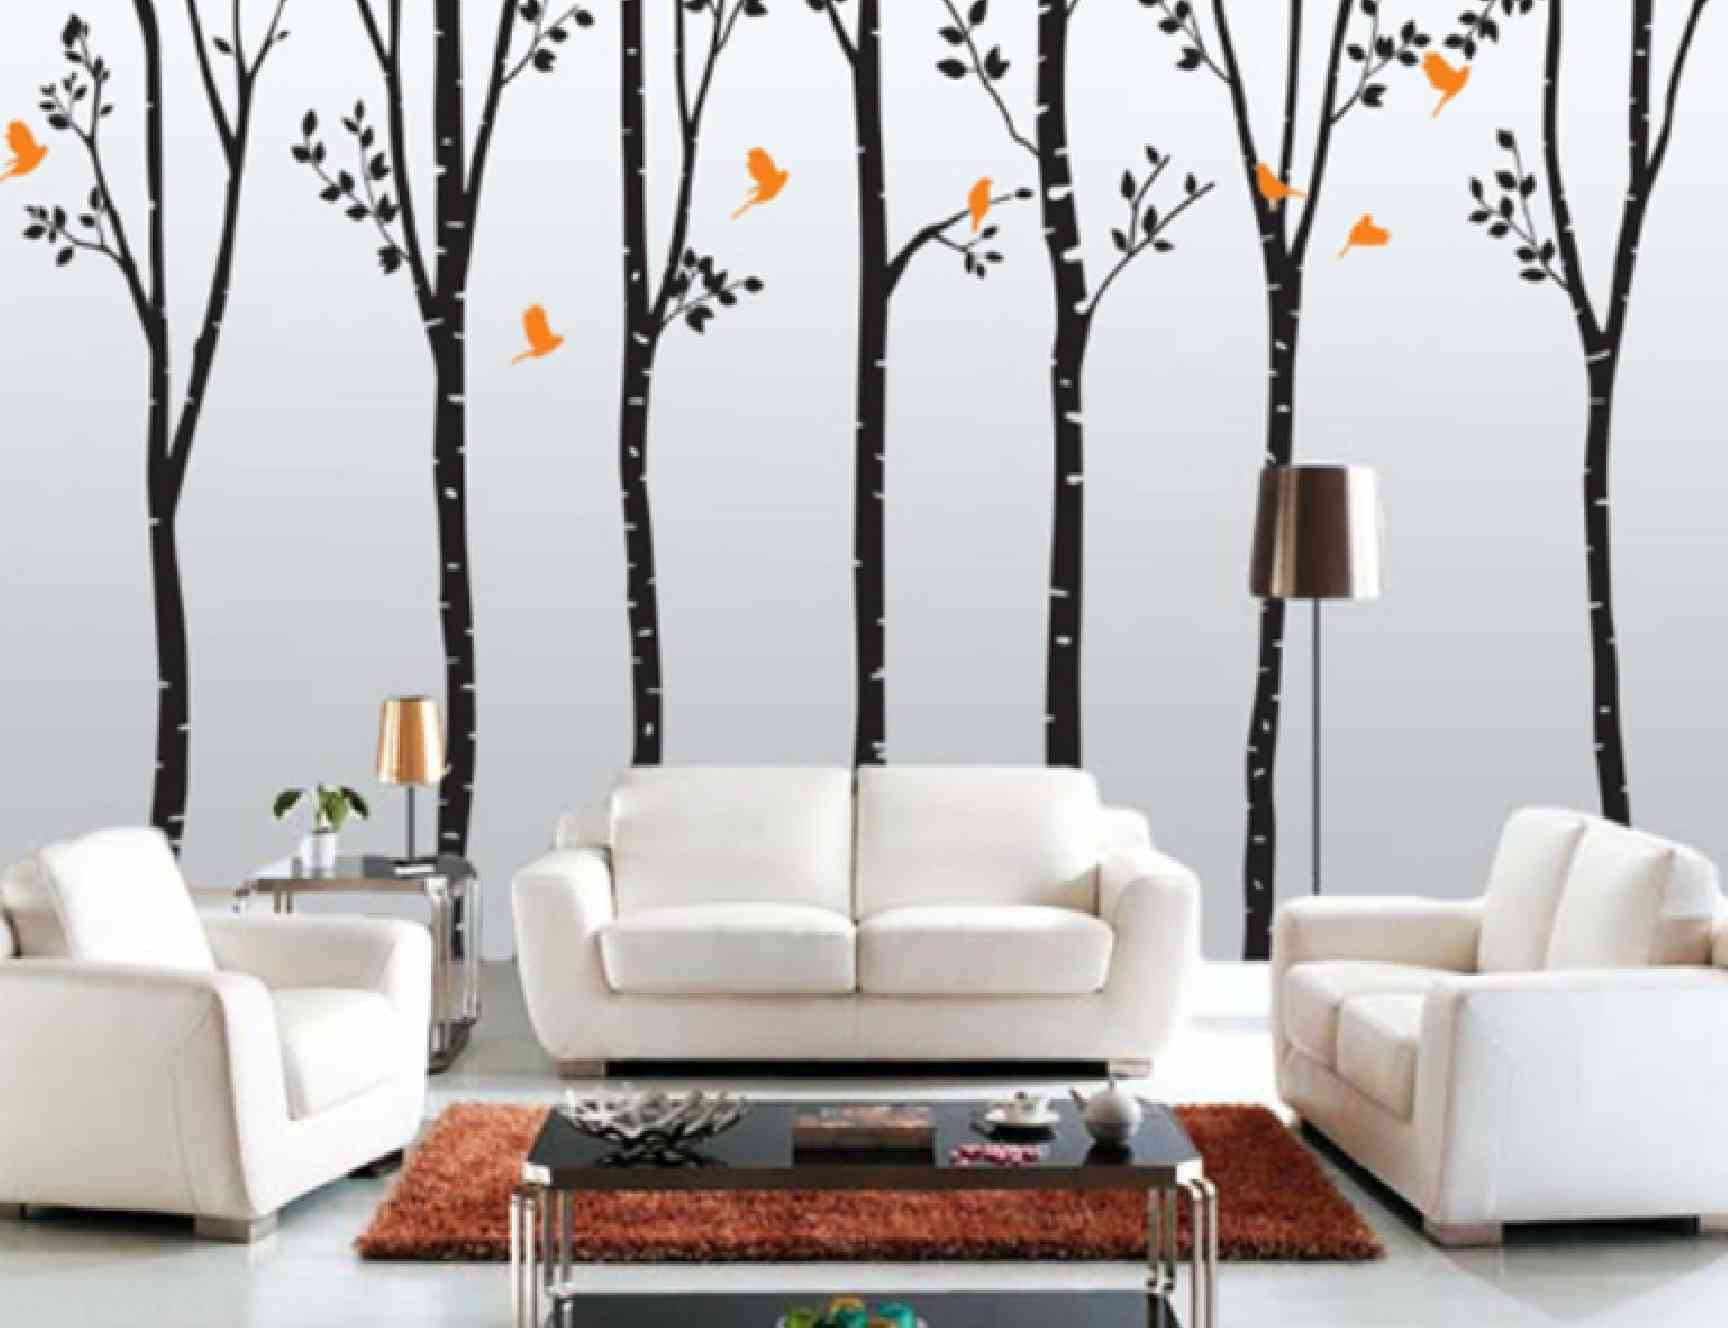 Wall Decorating Ideas For Living Rooms With Artistic Mural Wall Painting  With Creamy